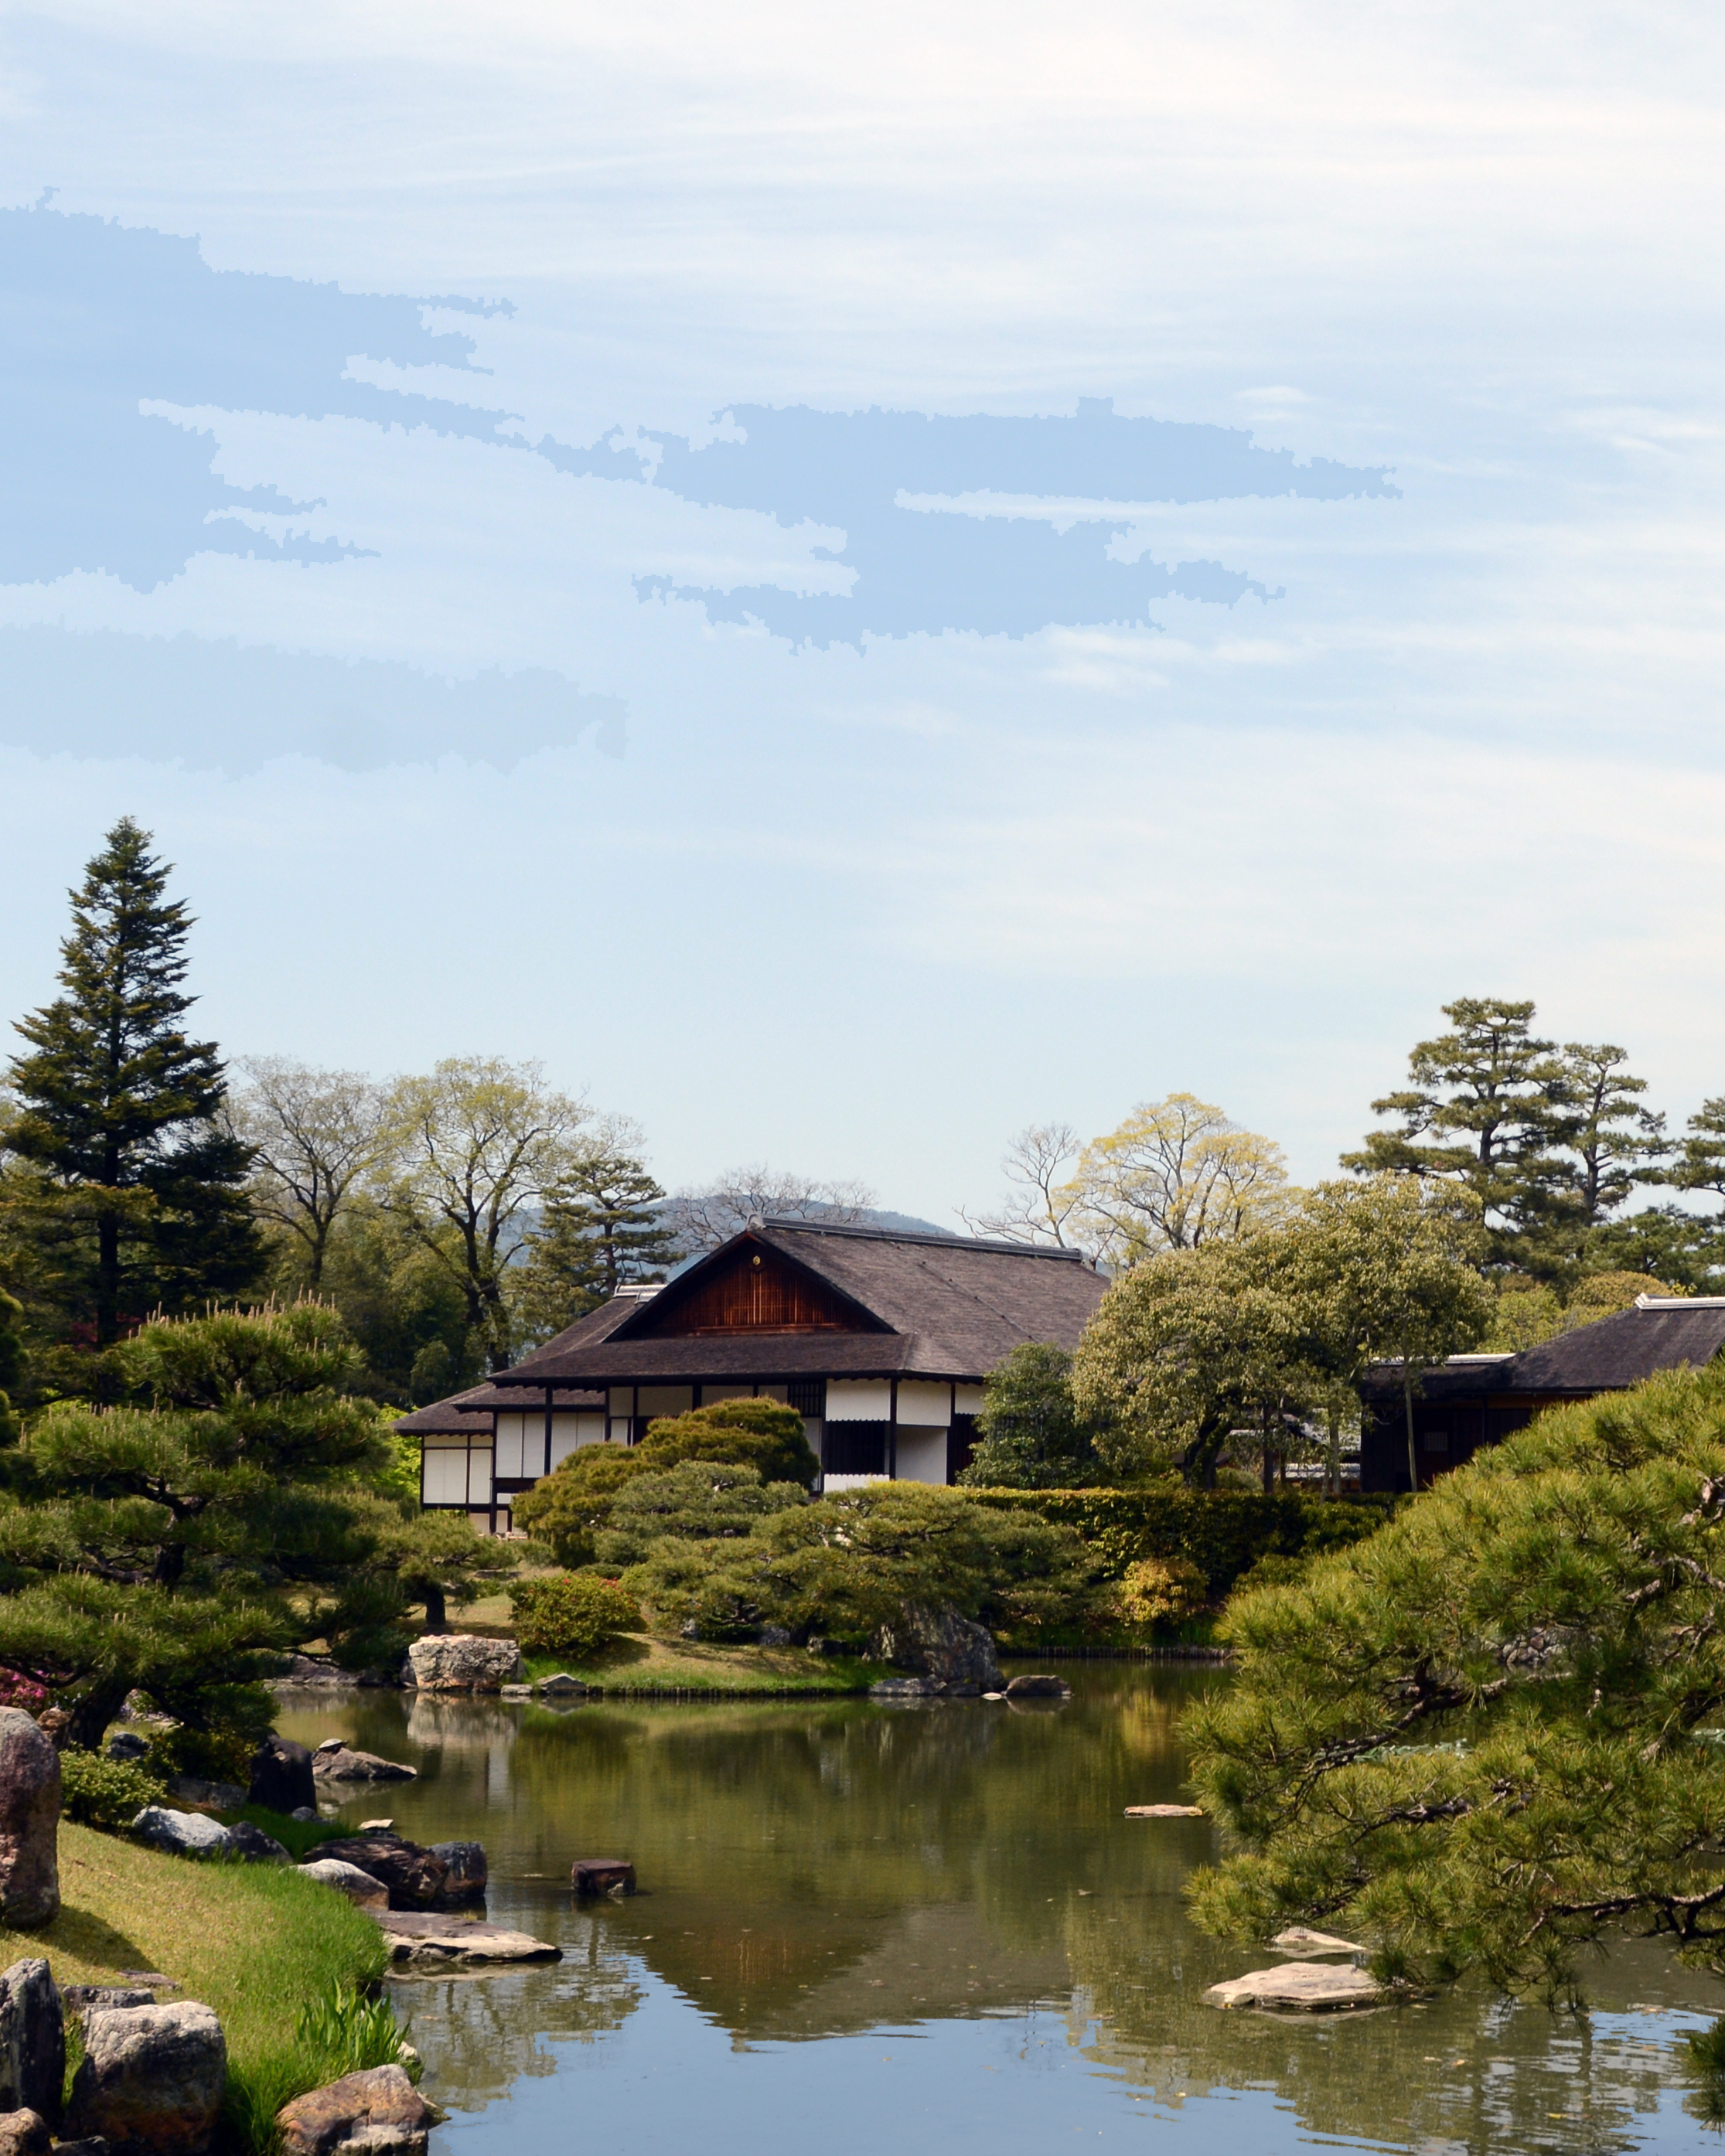 Katsura Villa's Old Shoin is the first and most prominent form, seen from across the pond.